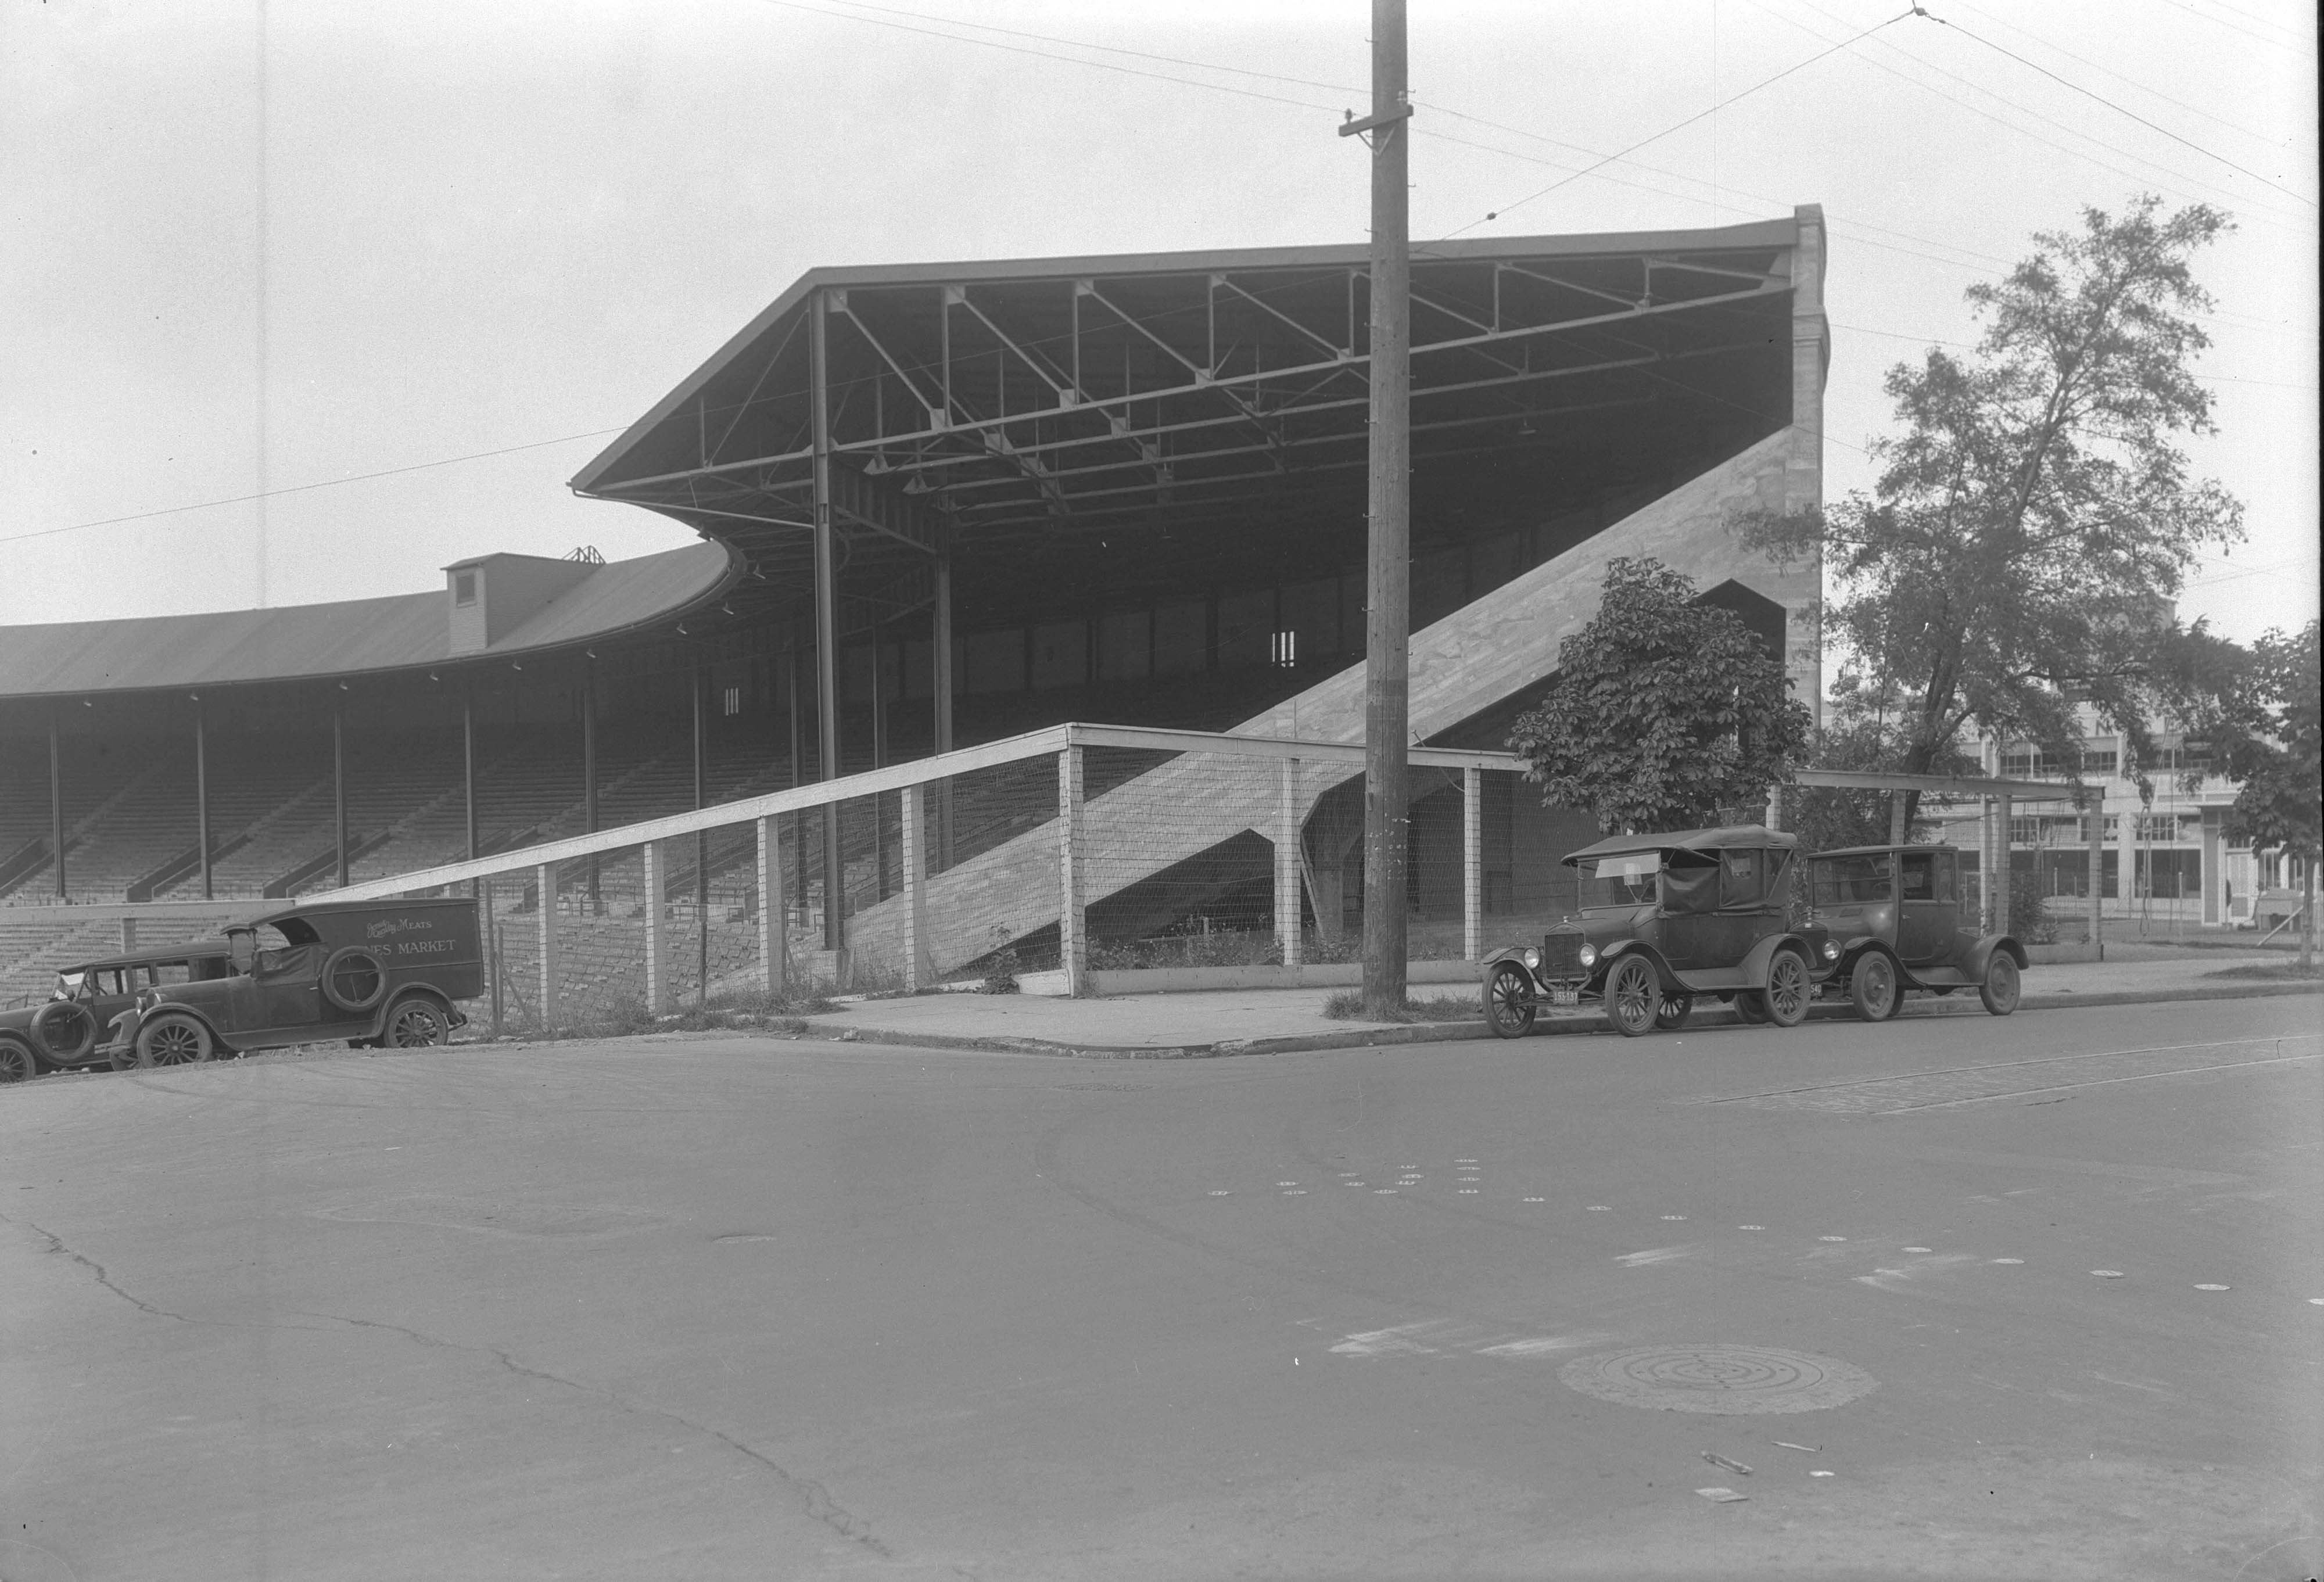 a2009-009-2249-side-of-multnomah-stadium-sw-18th-yamhill-1930